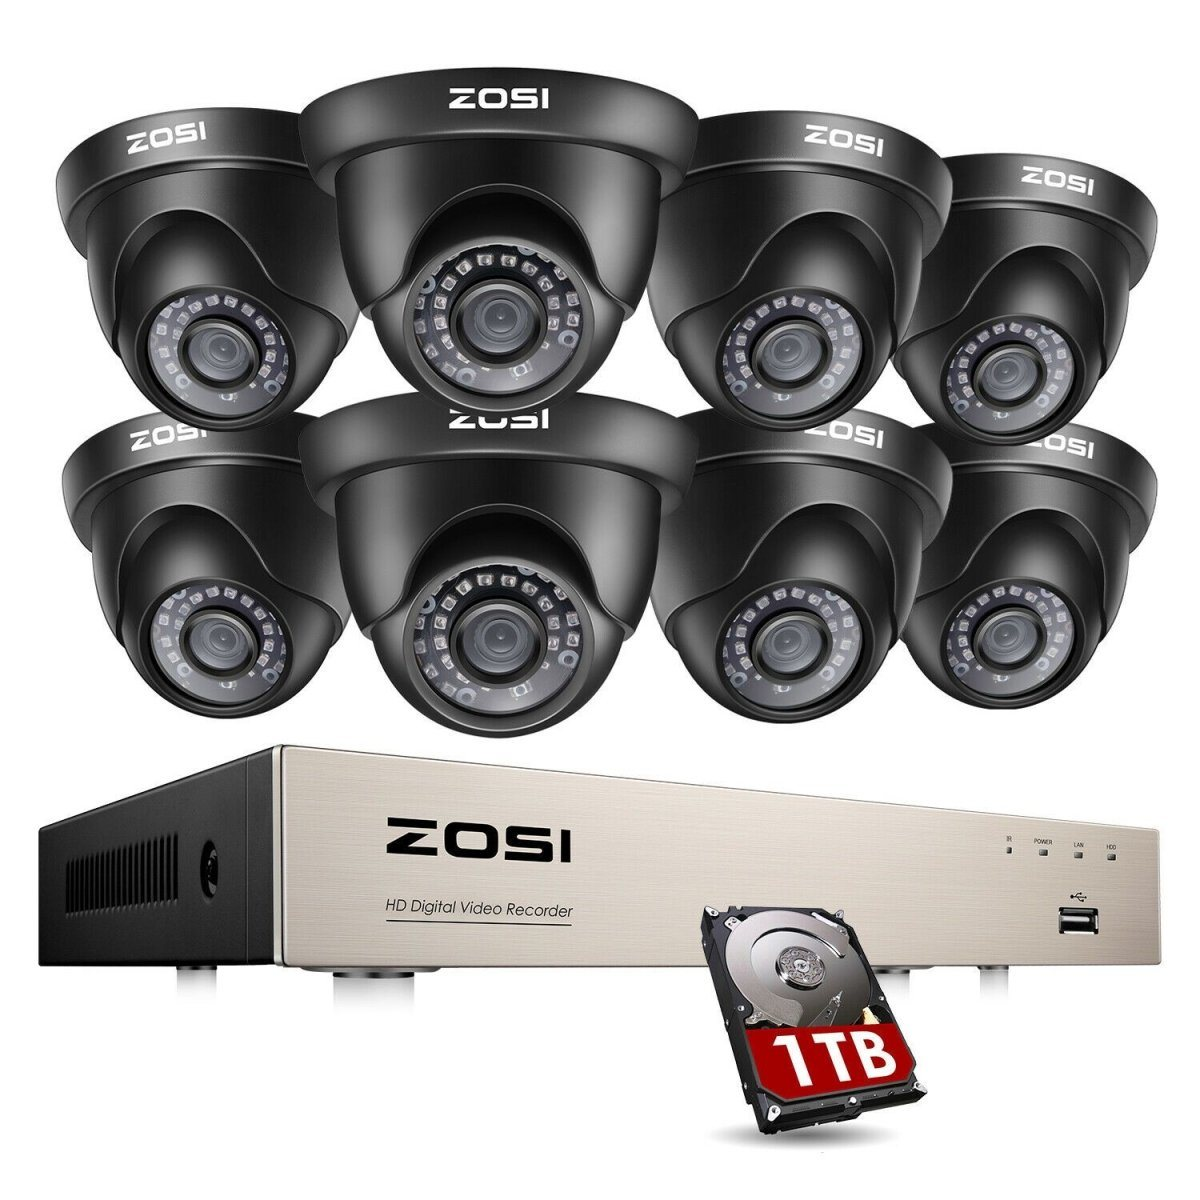 ZOSI 8CH H.265+ CCTV Home Security Camera - Fix Or Cell Now Device Shop